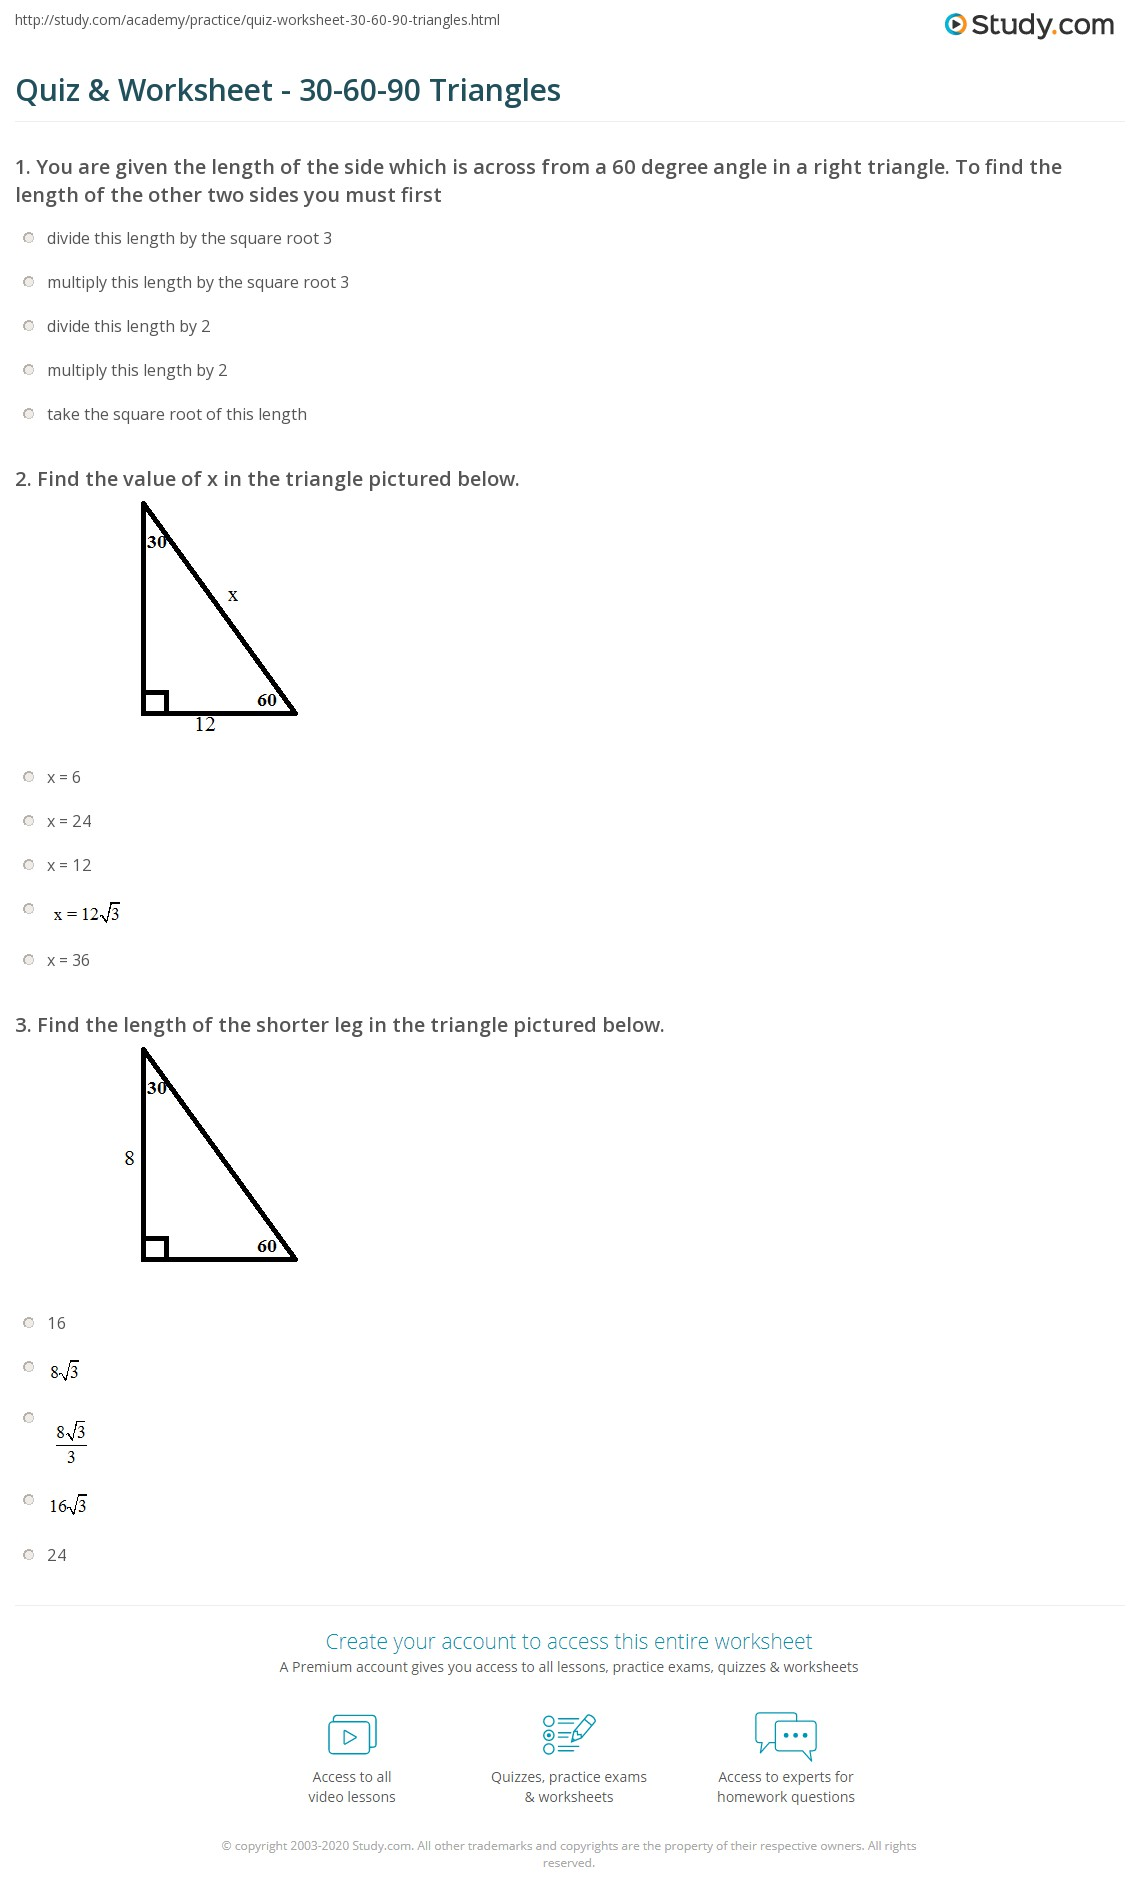 Printables 30-60-90 Triangle Worksheet quiz worksheet 30 60 90 triangles study com print triangle theorem properties formula worksheet